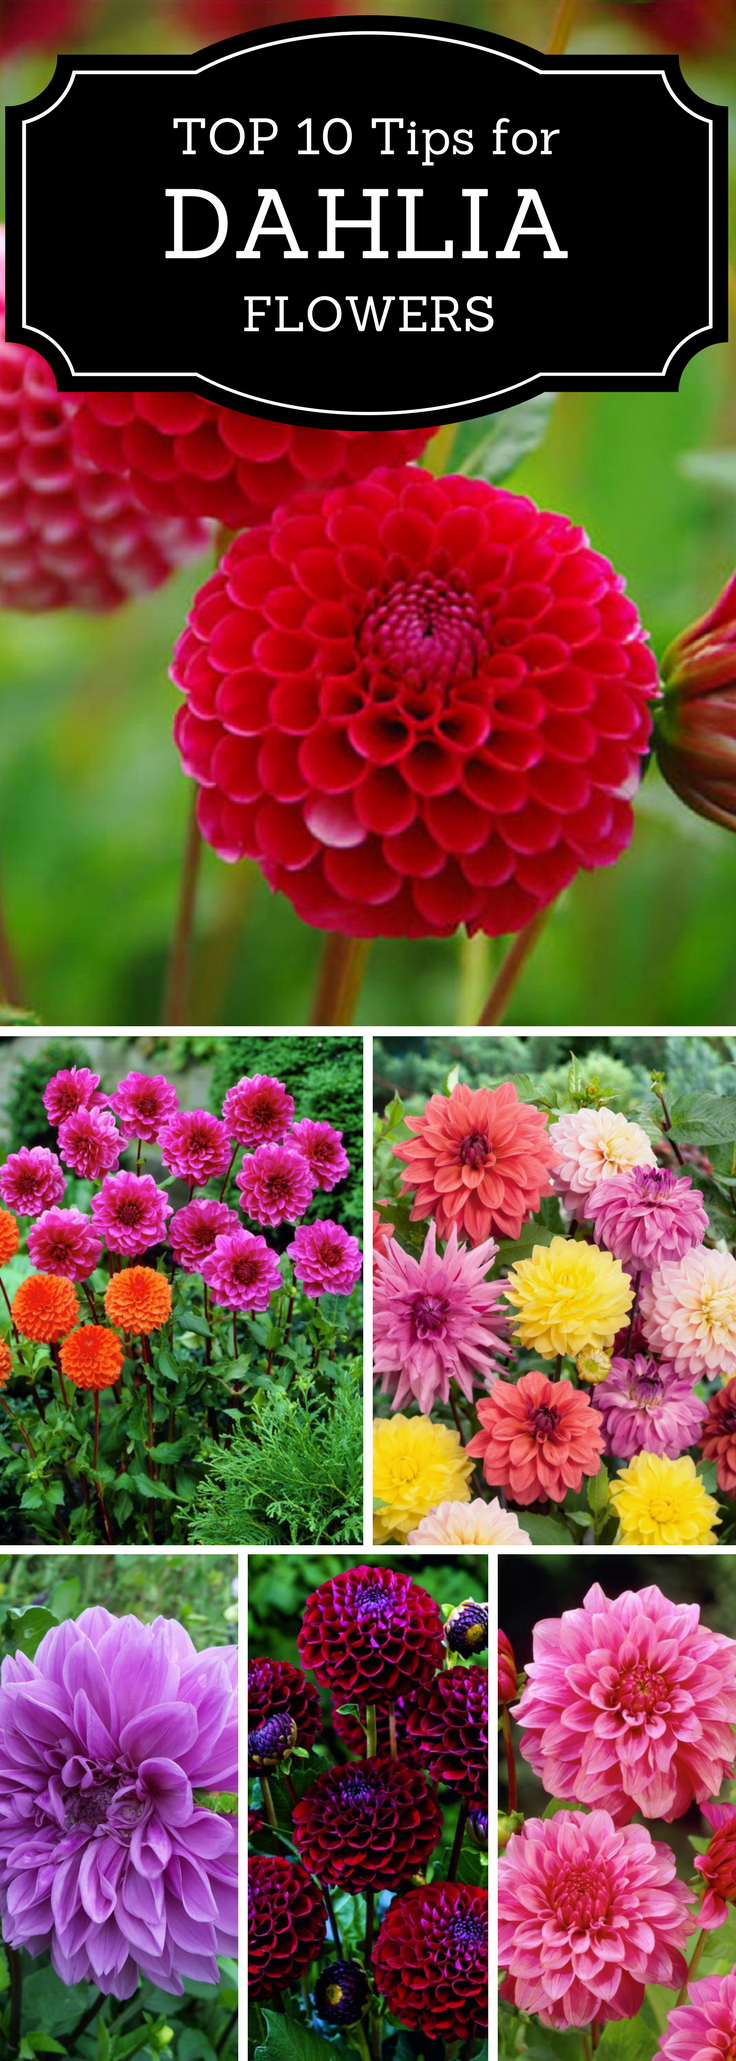 Top 10 Tips On How To Plant Grow And Care For Dahlia Flowers Top Inspired Dahlia Flower Planting Flowers Flower Farm